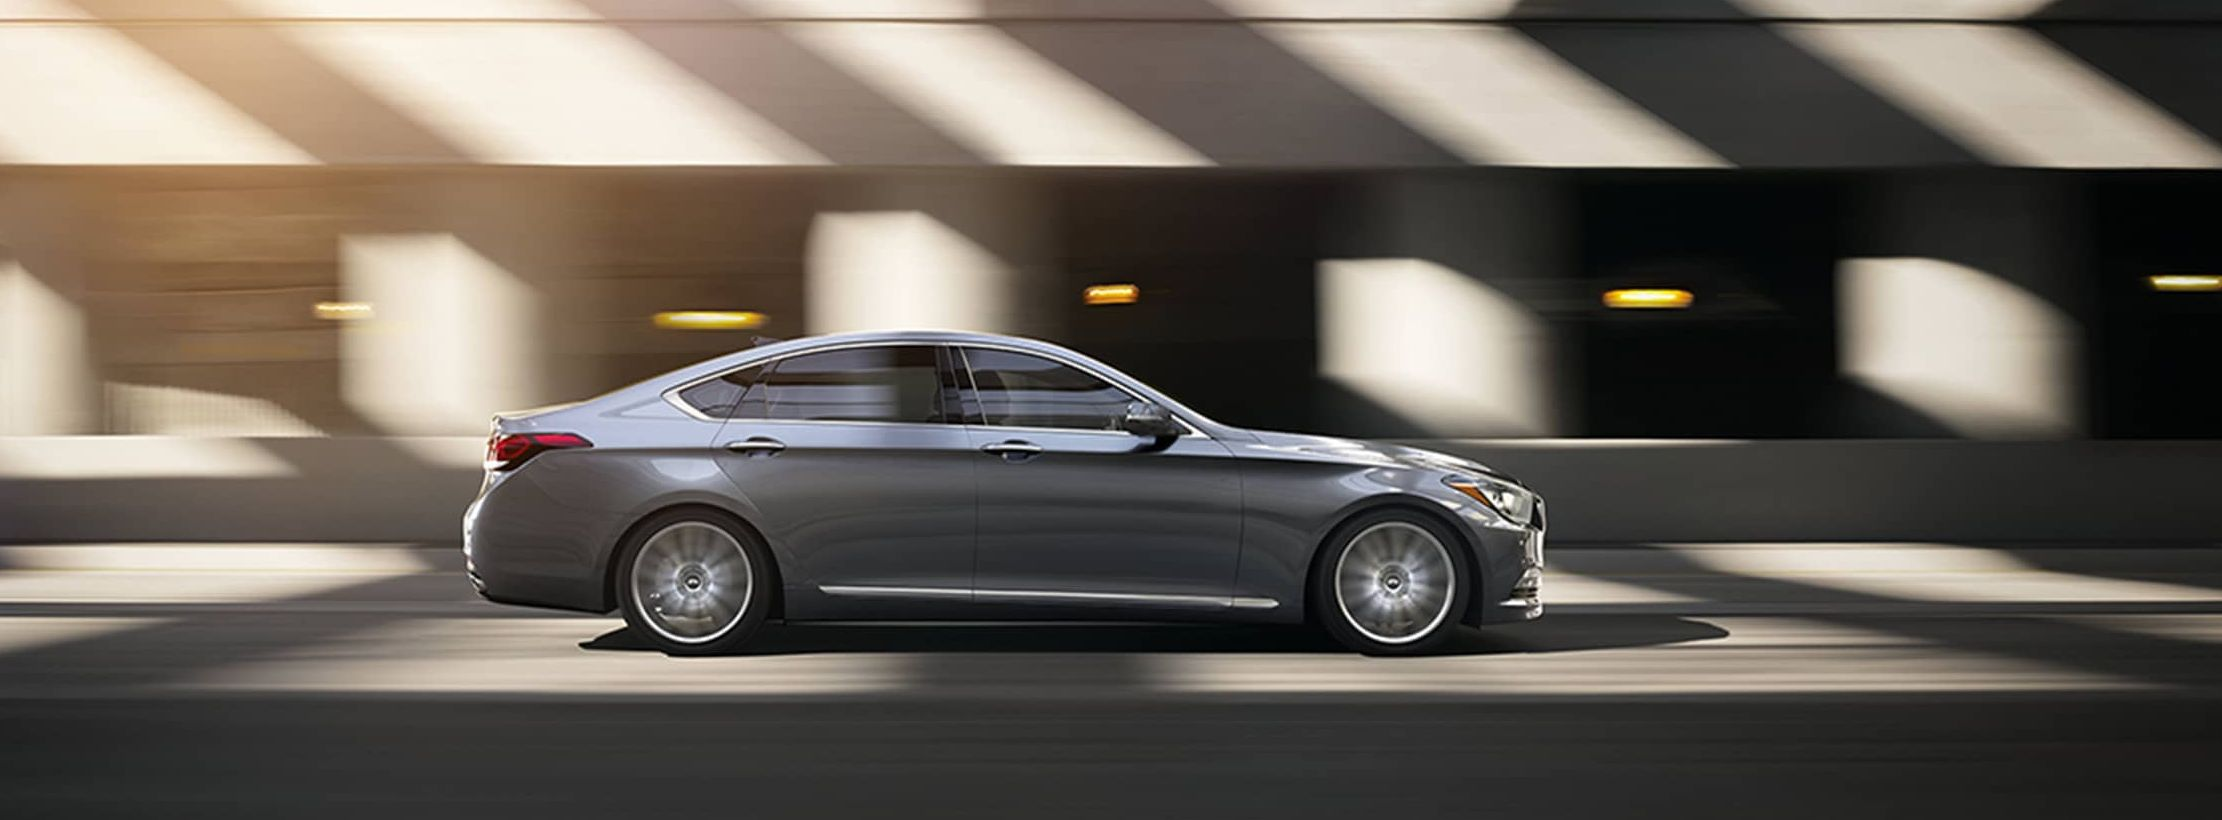 2017 genesis g80 for sale near silver spring md pohanka hyundai of capitol heights. Black Bedroom Furniture Sets. Home Design Ideas